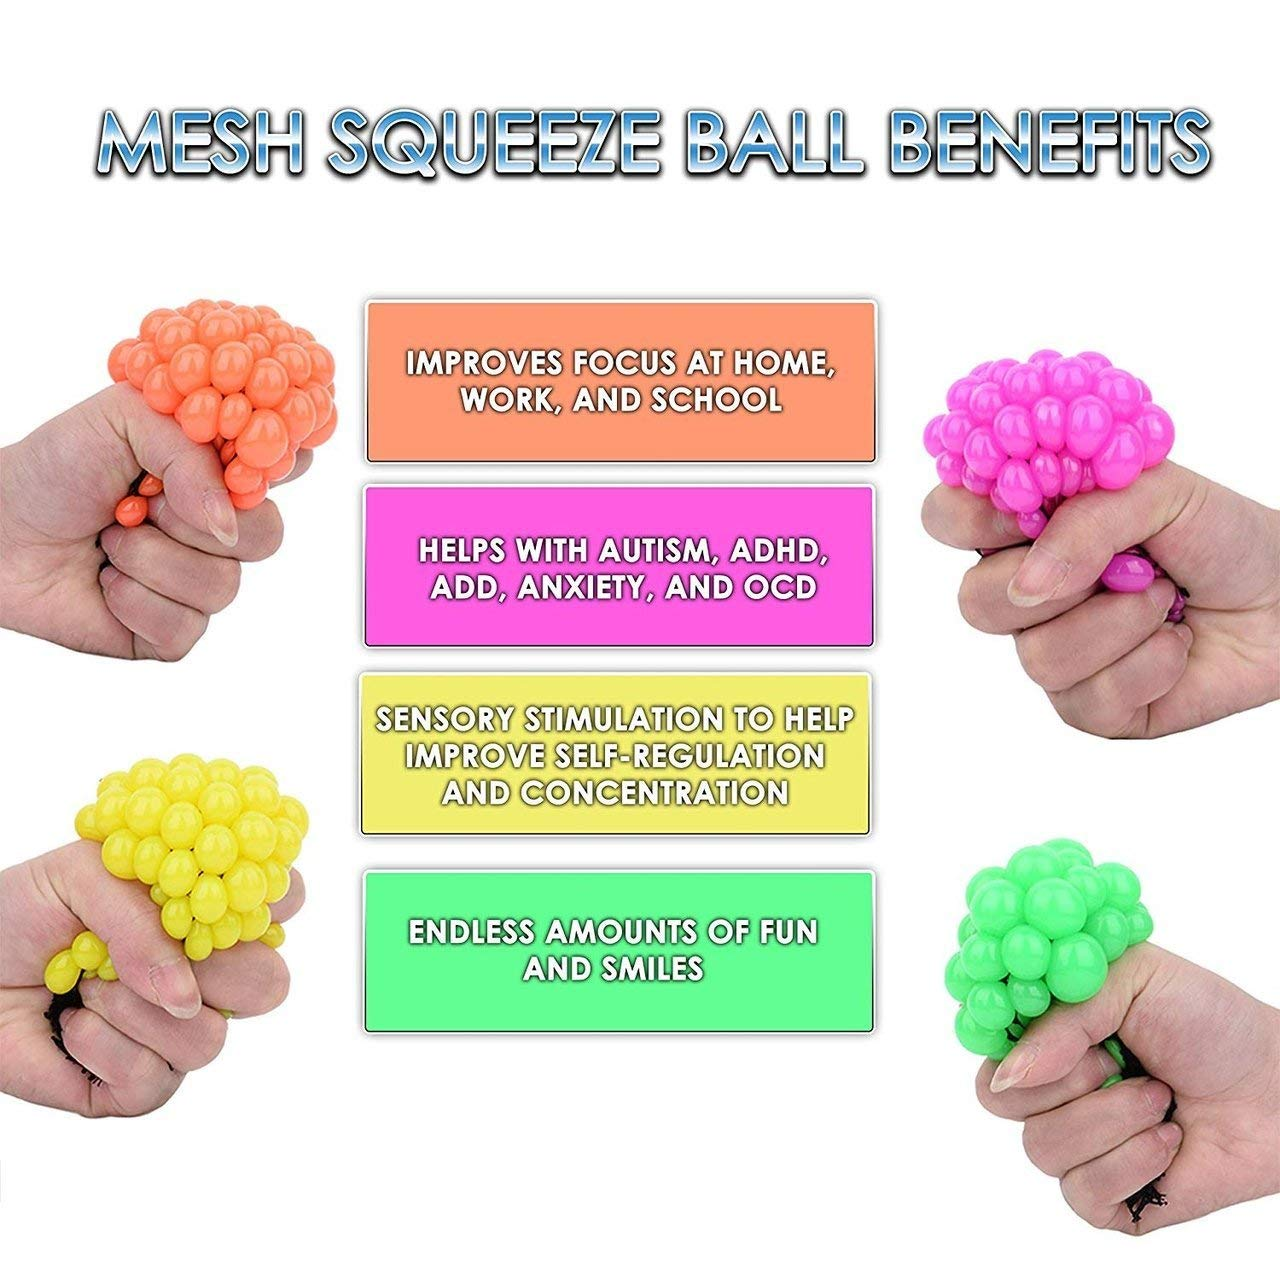 Totem World 36 Colorful Sewn Mesh Stress Balls - 2.4'' Squishy Fidget Toy Perfect for Kids and Adults Materials for Lasting Use - Squeeze Balls for Anxiety and Concentration - Great Party Favors by Totem World (Image #3)